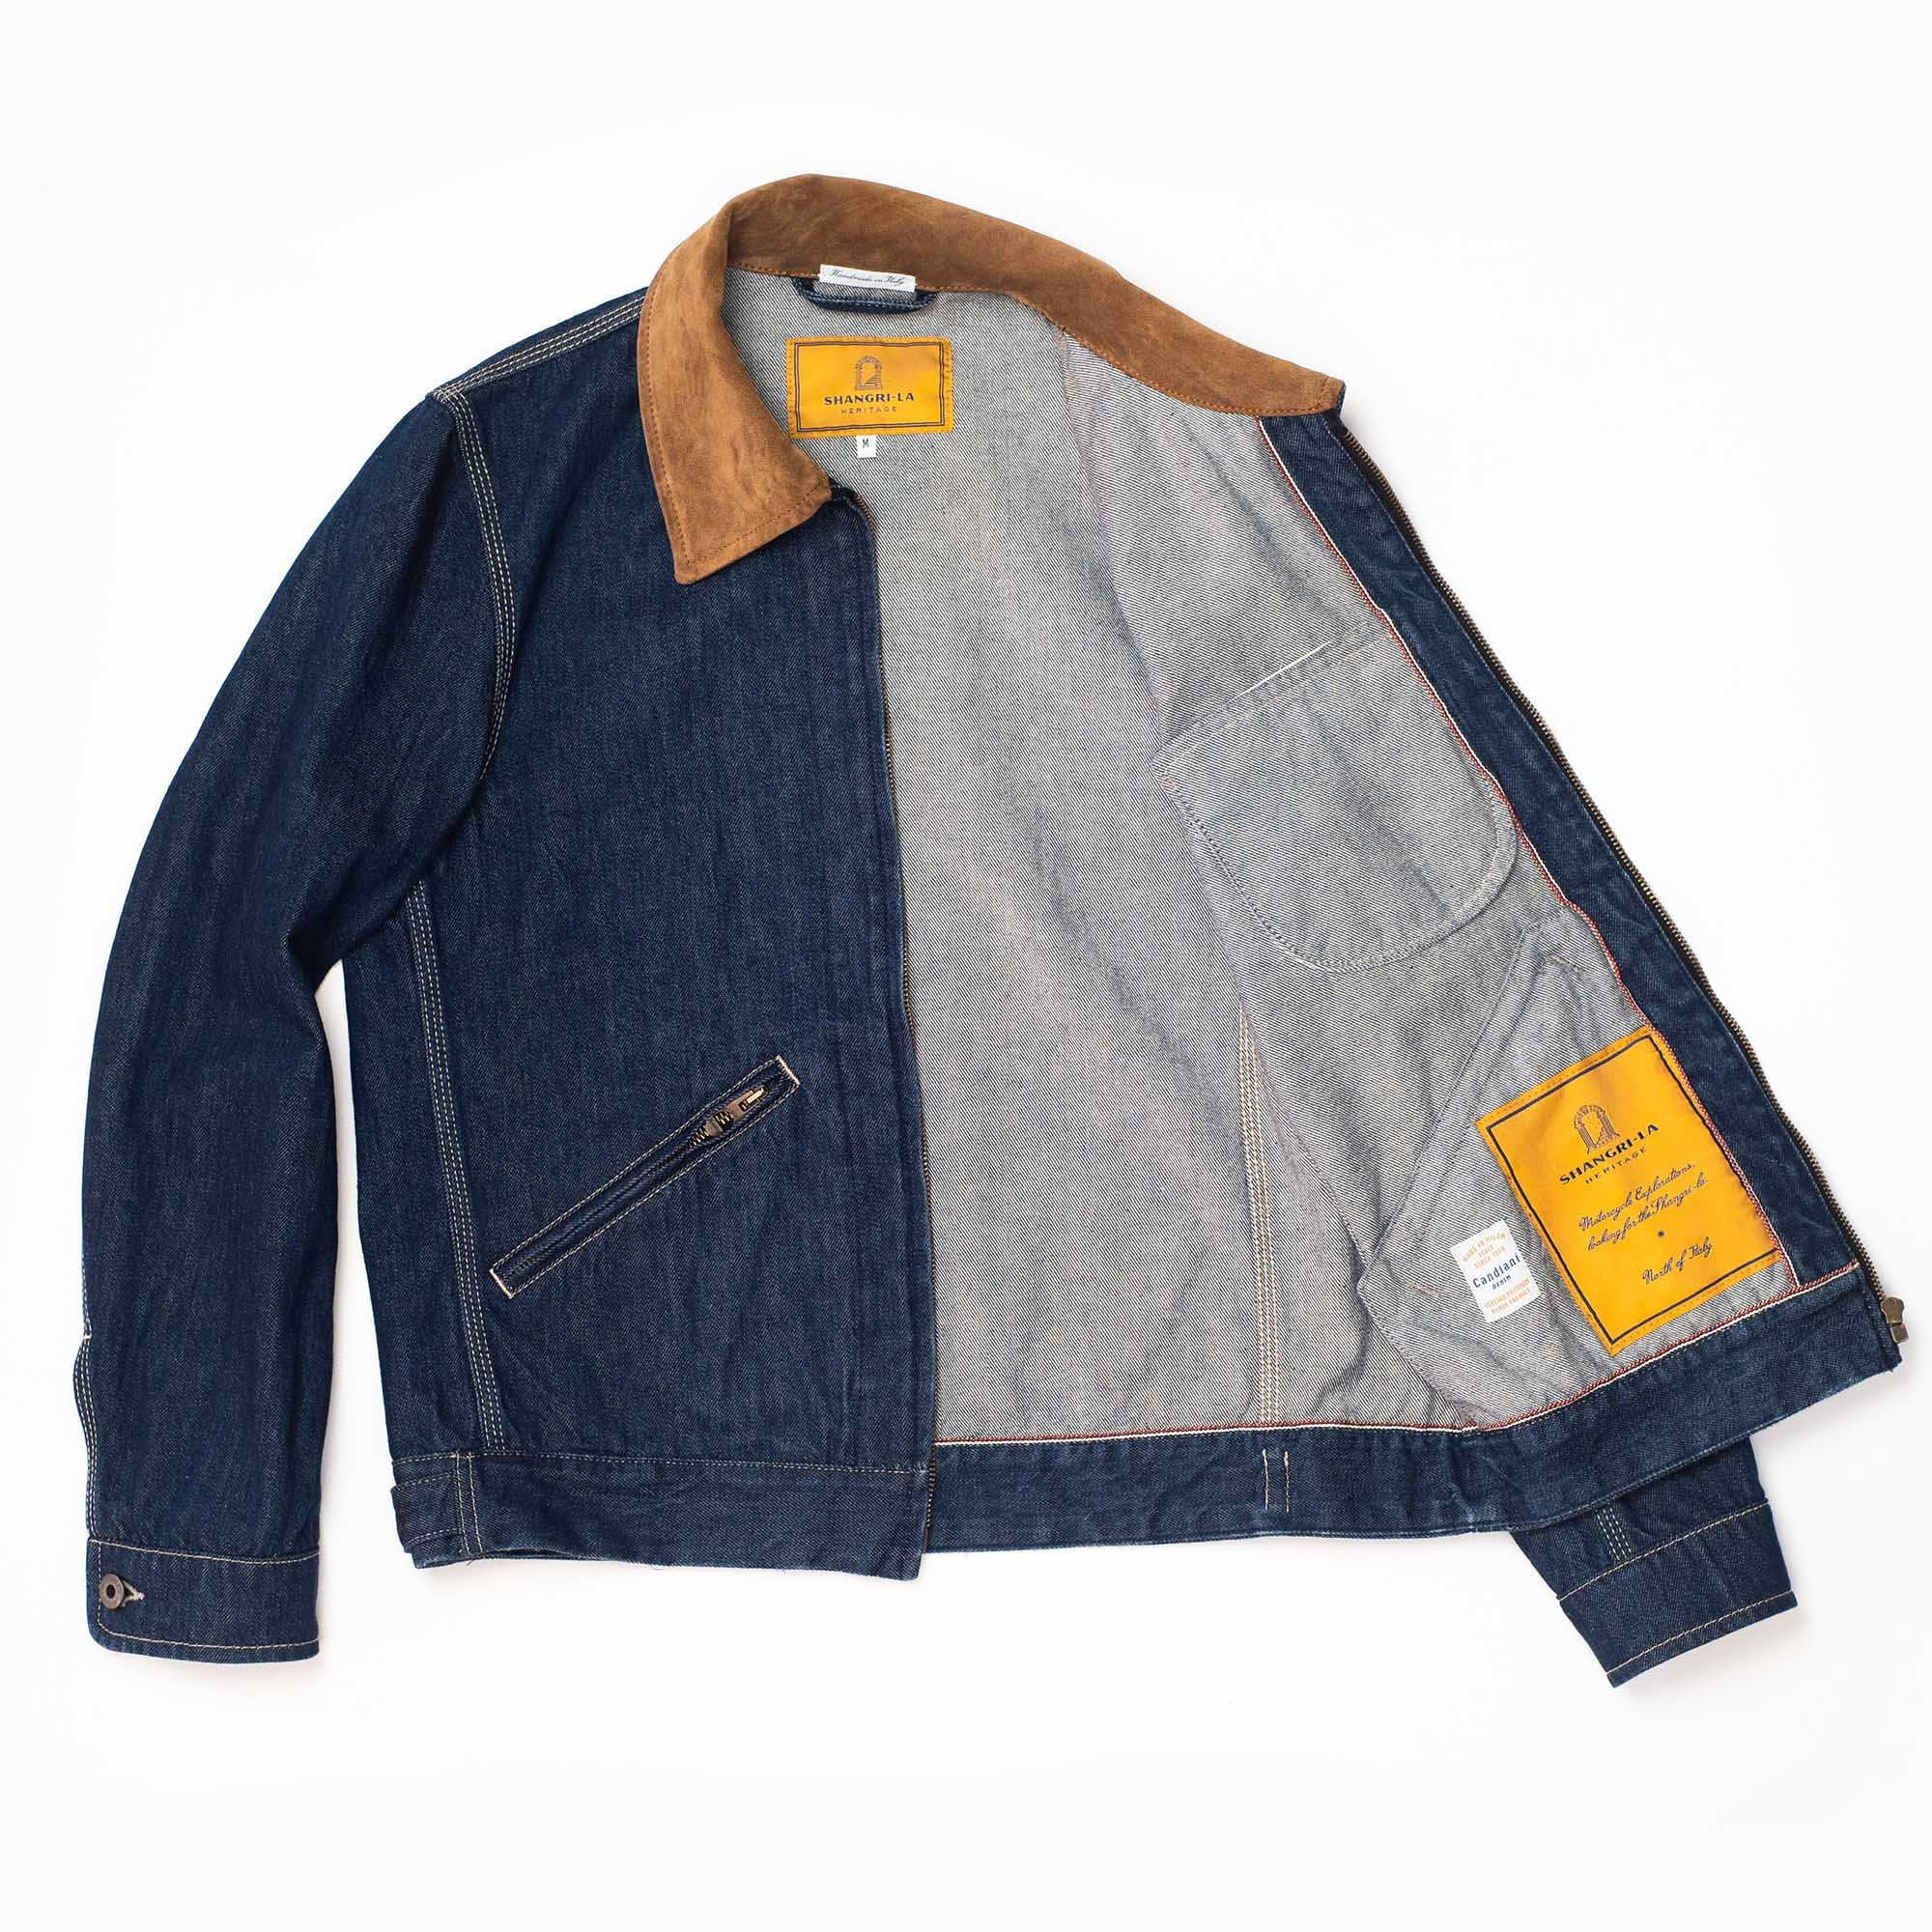 shangri-la-heritage-varenne-ranch-selvedge-candiani-denim-jacket-still-life-open